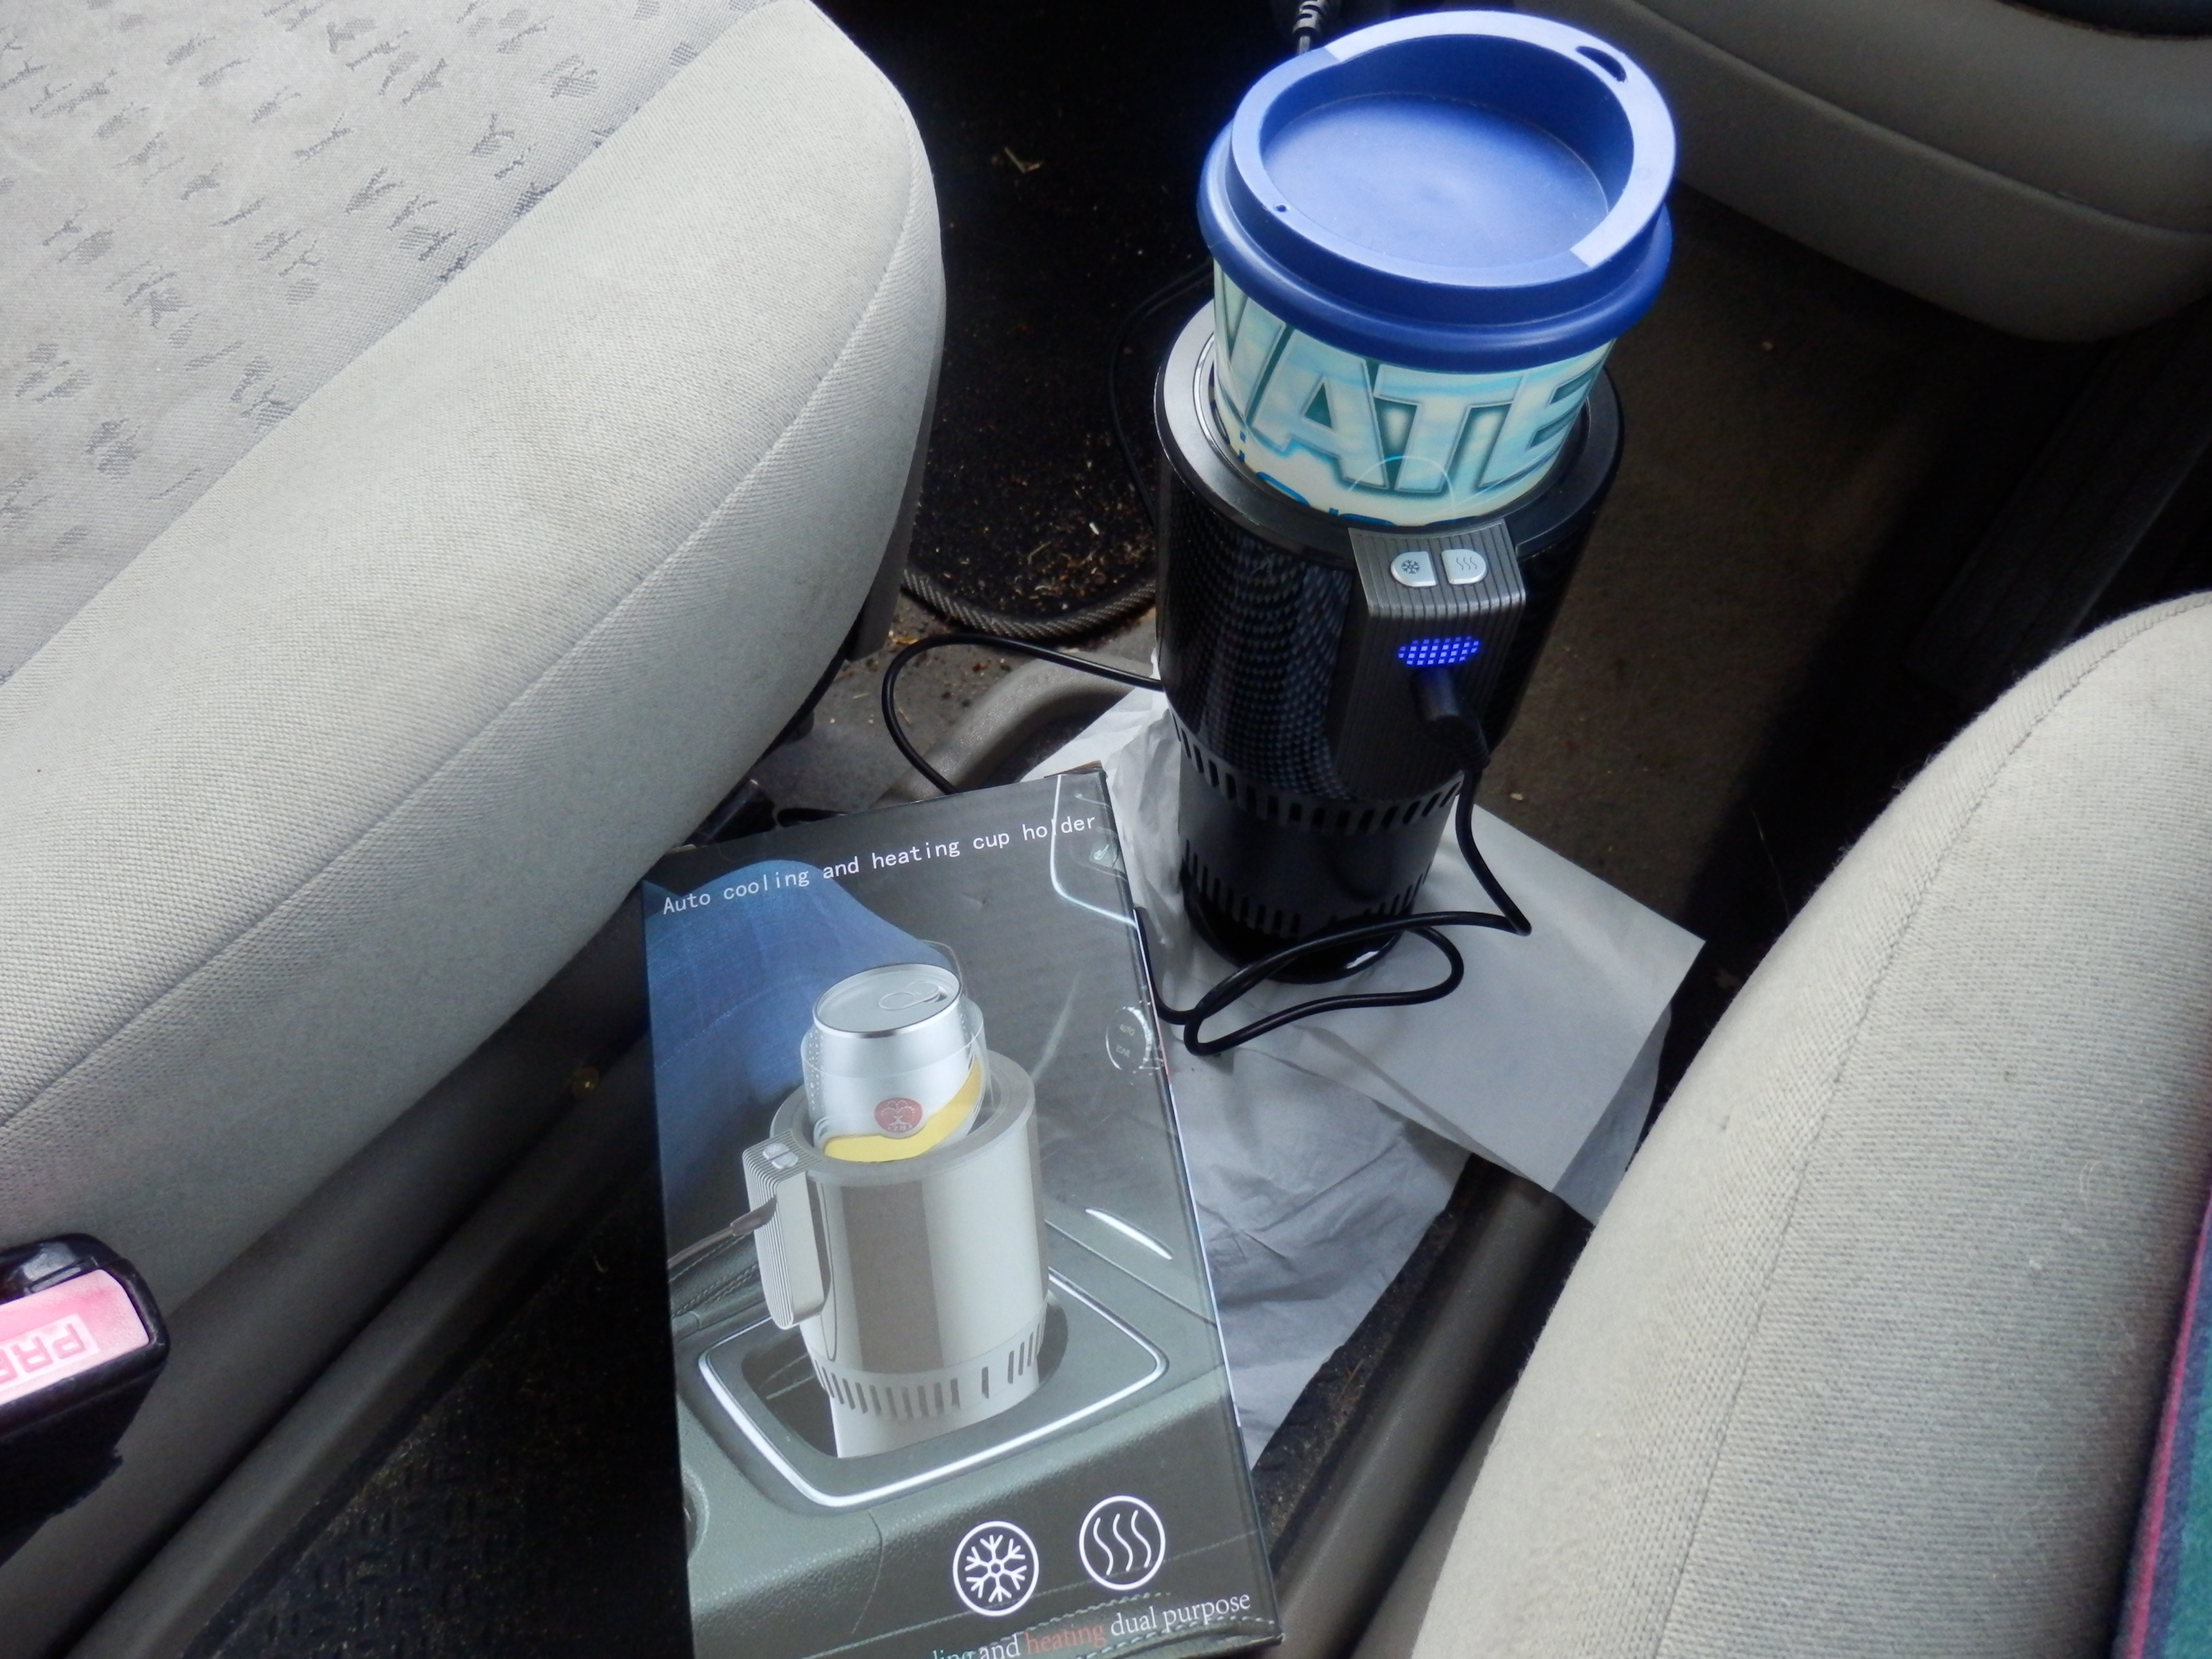 Ranipobo 2-in-1 Warming & Cooling Car Cup Holder